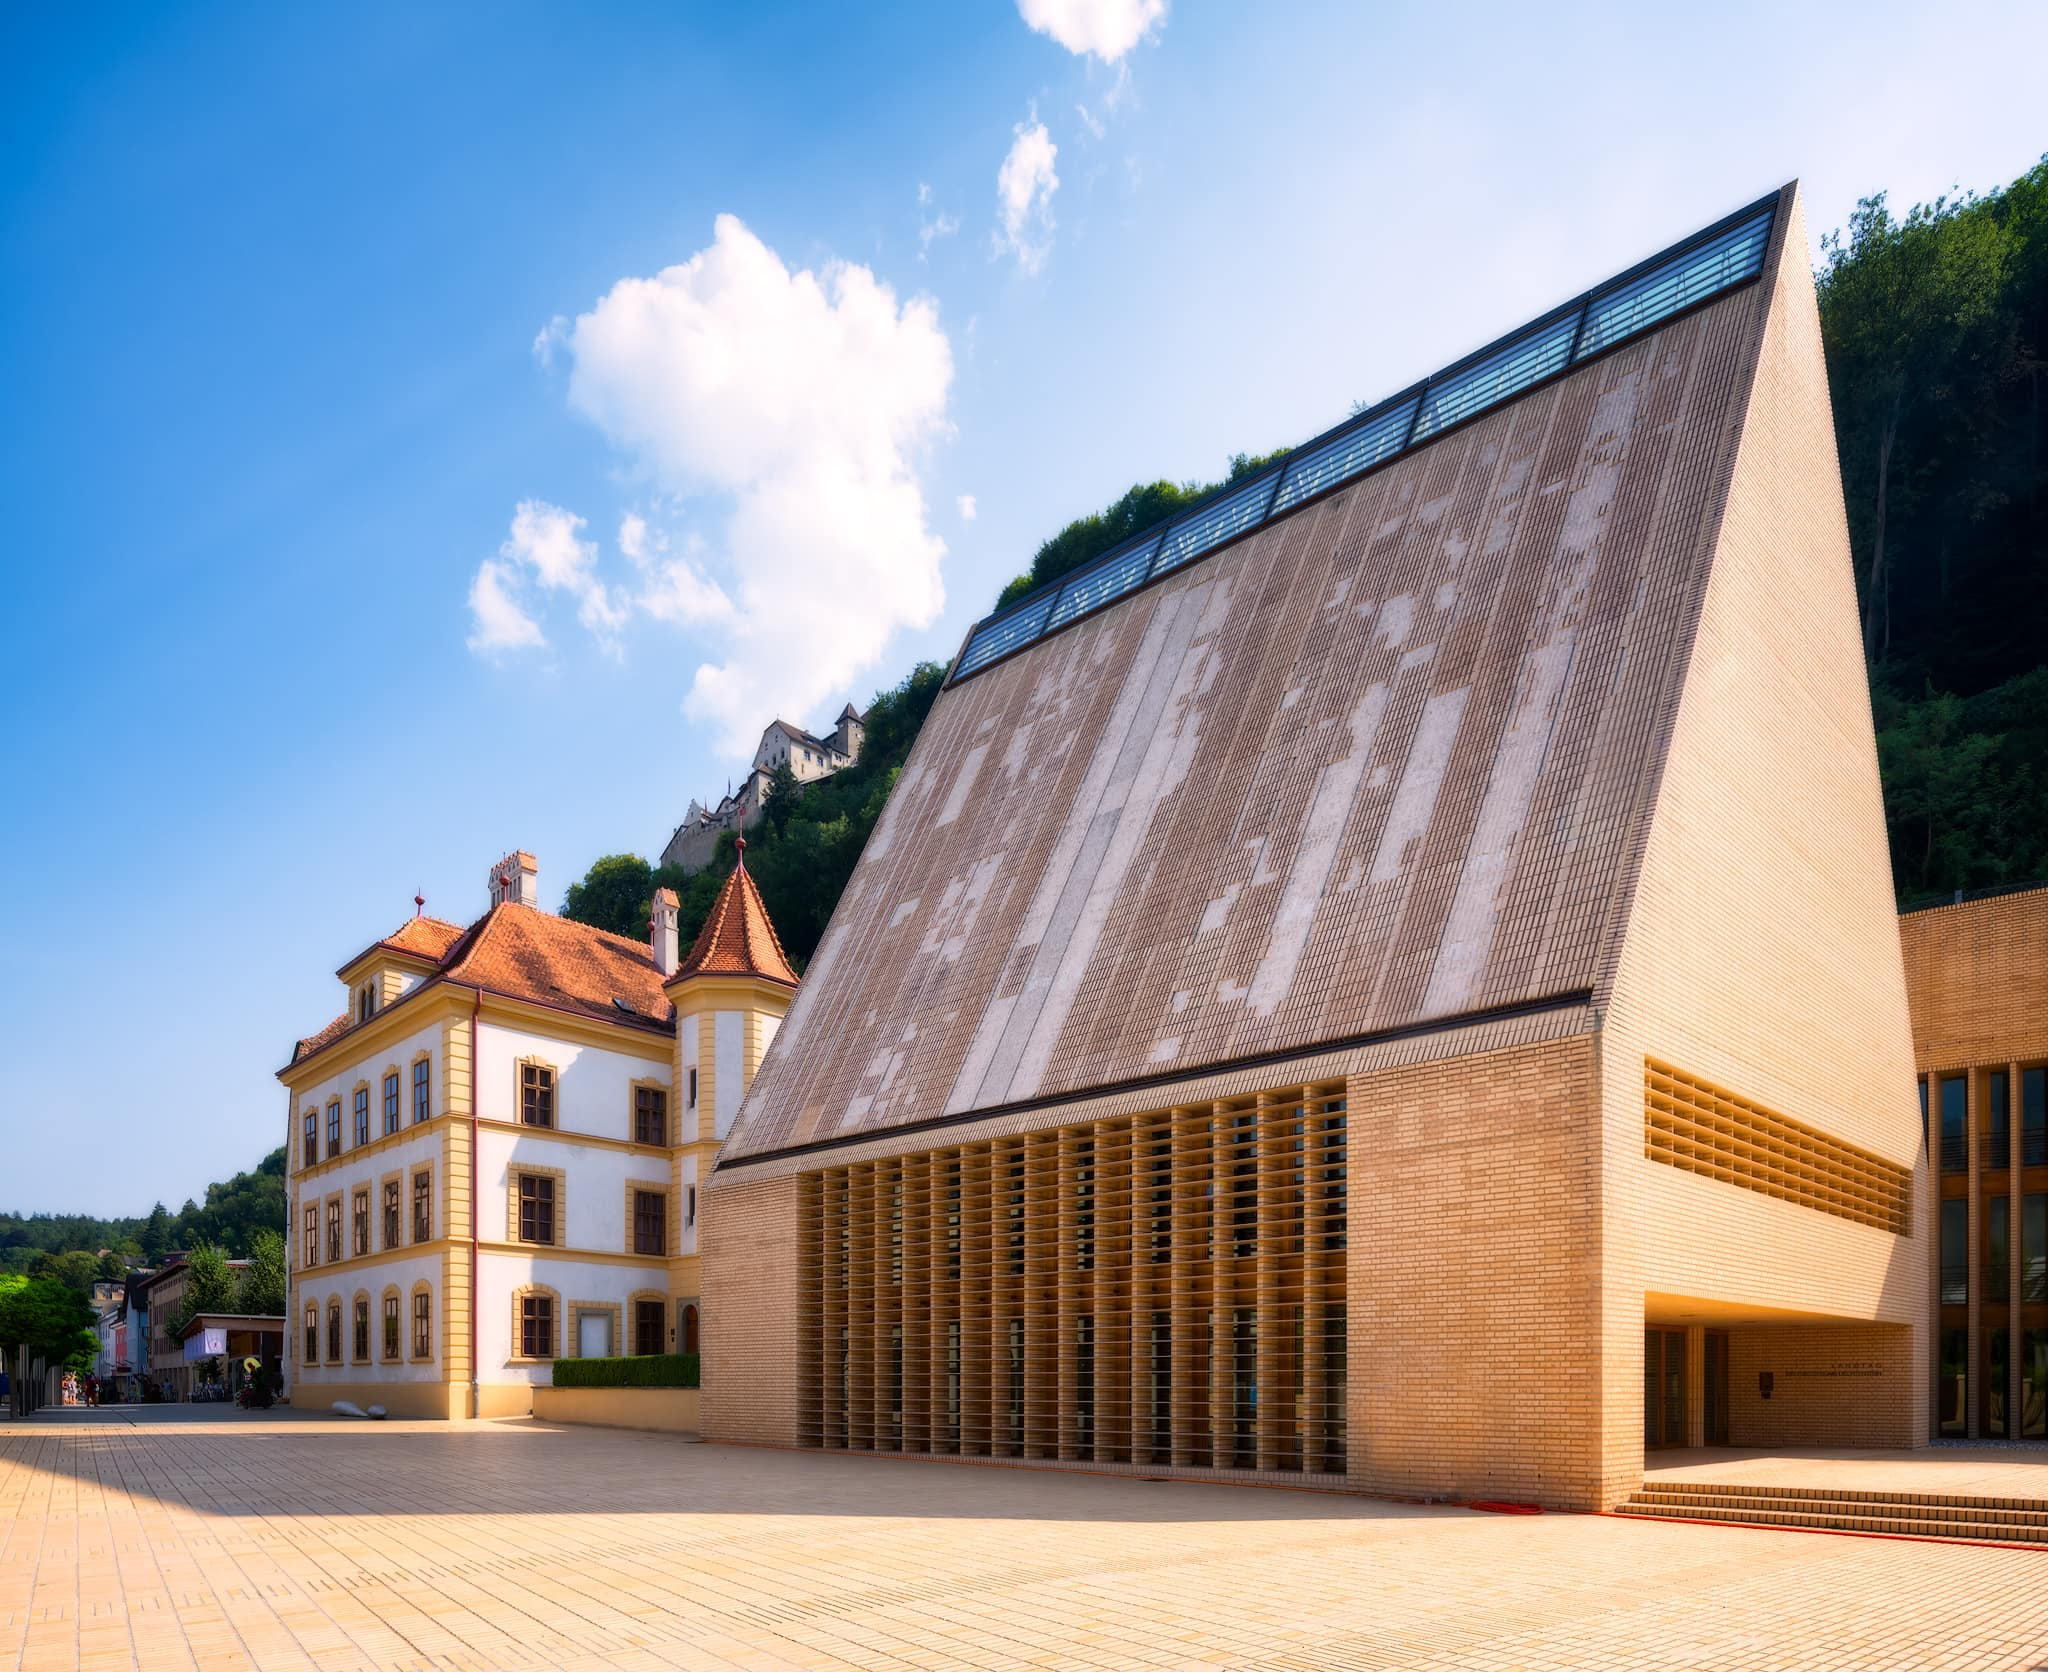 Landtag of Liechtenstein building and the castle of Vaduz, Liechtenstein